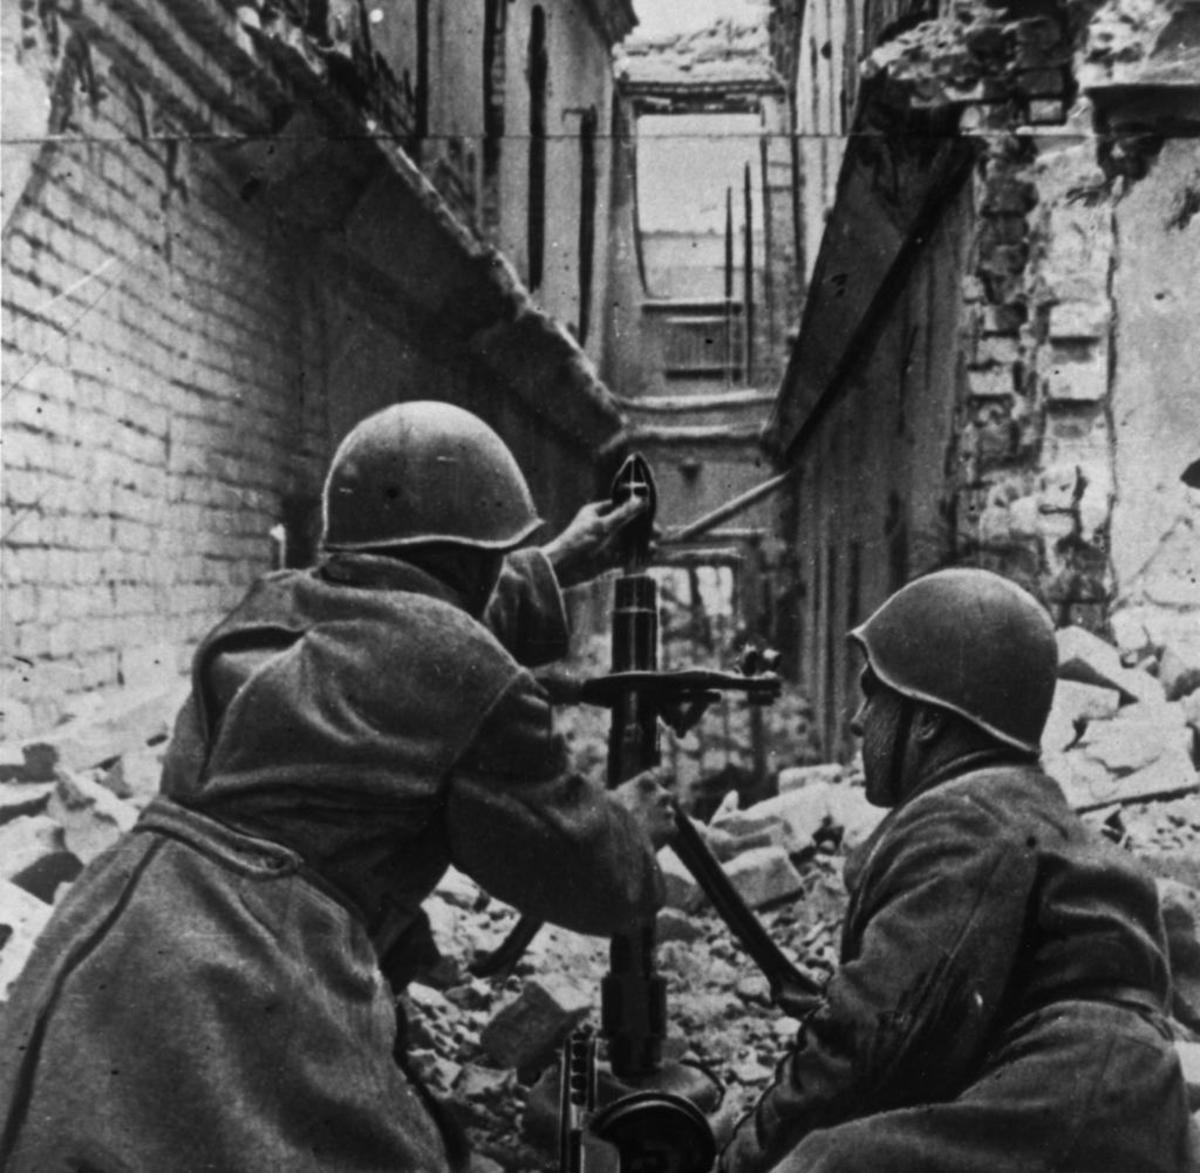 Soviet mortar crew in action in the rubble of Stalingrad.